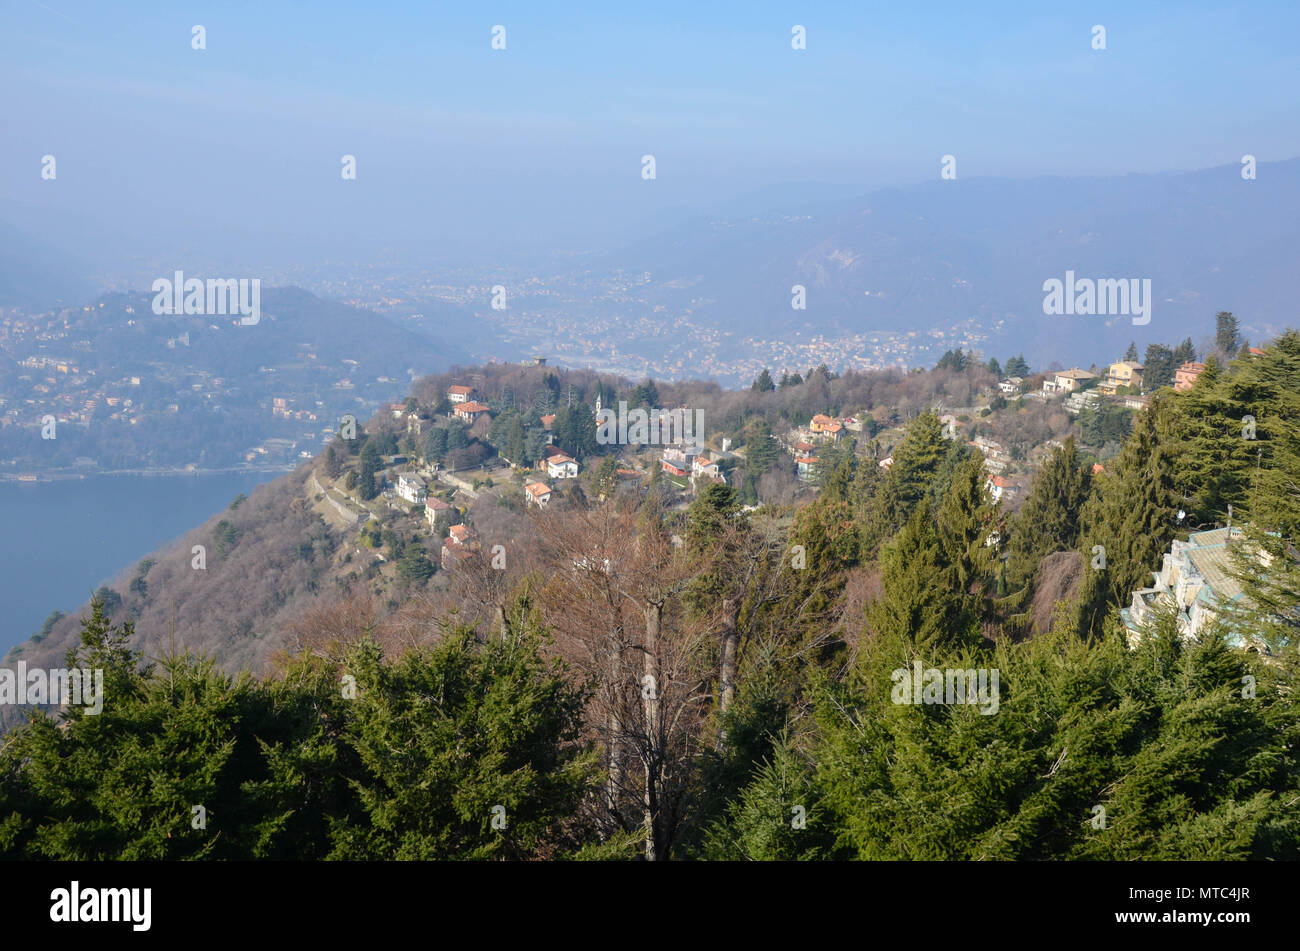 View of Lake Como from the village of Brunate, Lombardy, Italy, January 2018 - Stock Image